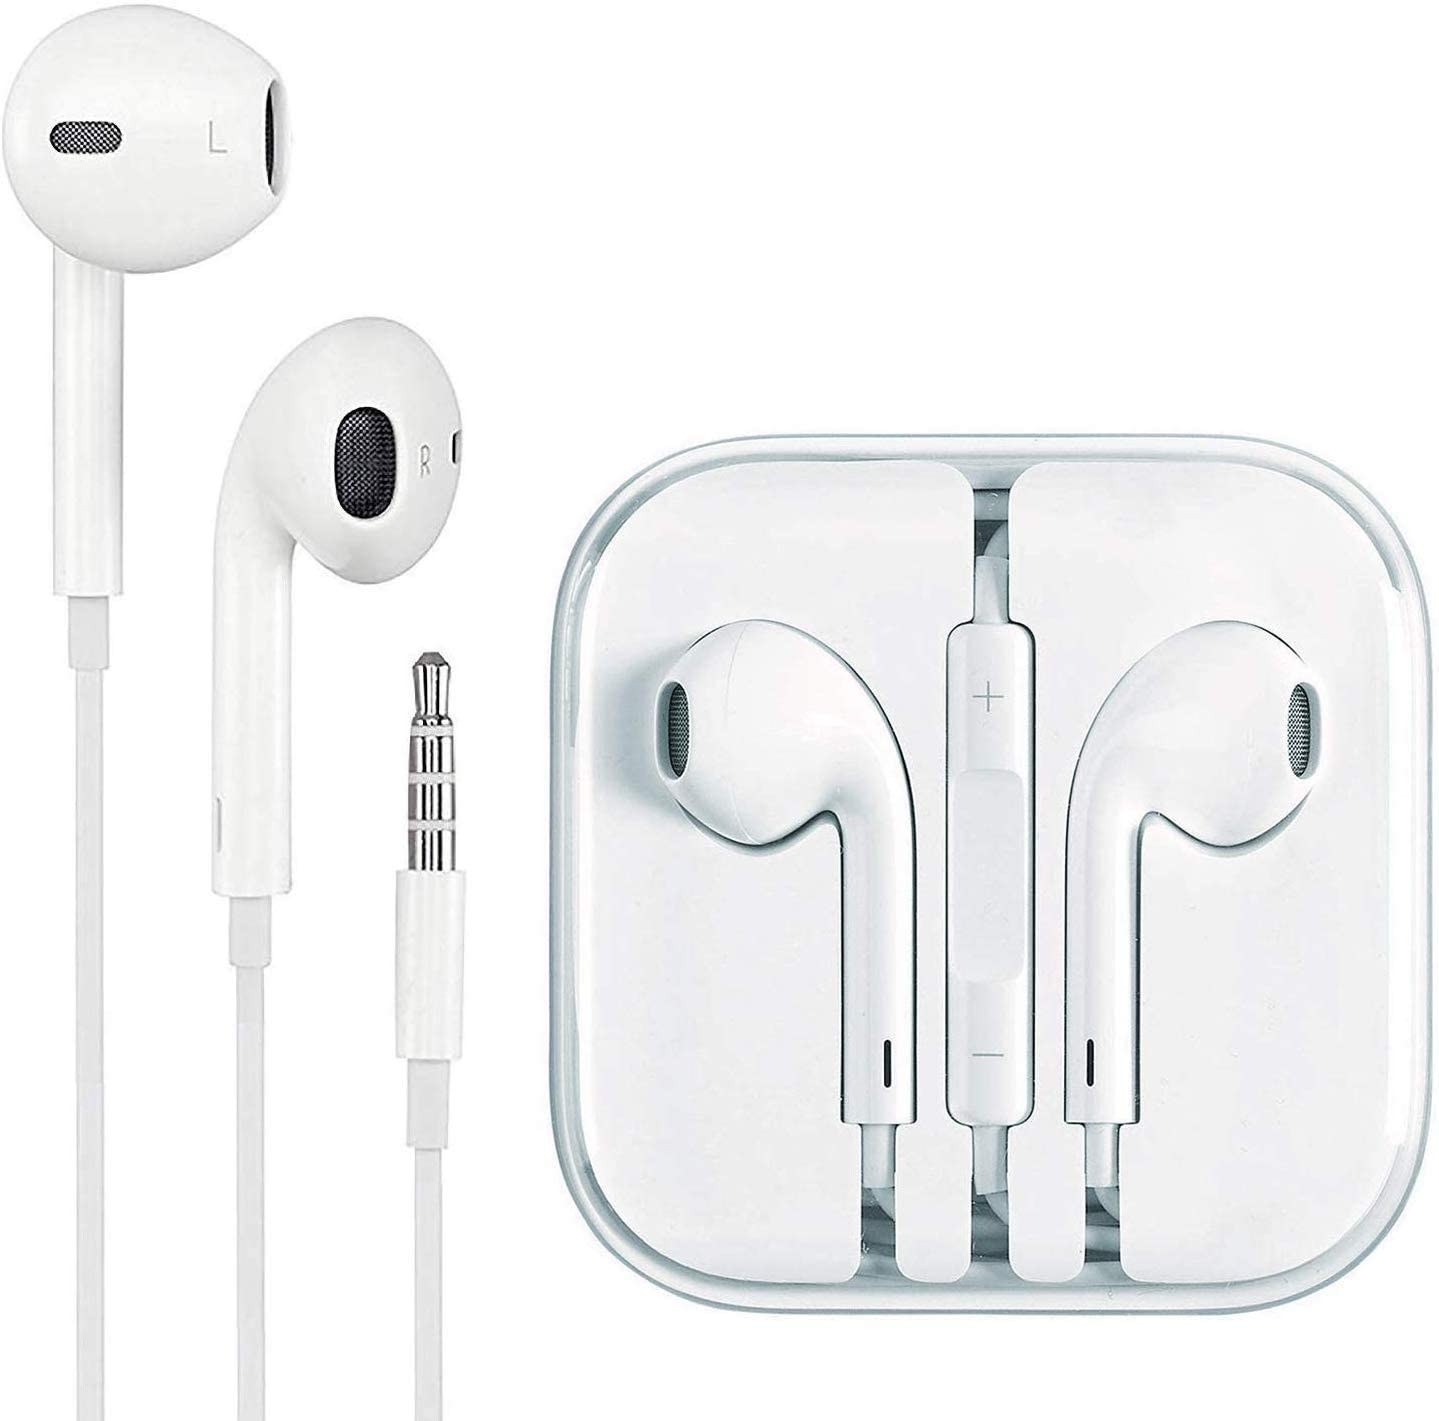 Earbuds, 3.5mm Wired Microphone Earphones Stereo Headphones Noise Isolating Headset Compatible with iPhone 6S/6S Plus/6/6 Plus/SE/5S/5C/5/4S/4/Samsung/Android/MP3/MP4/PC Android Earphones